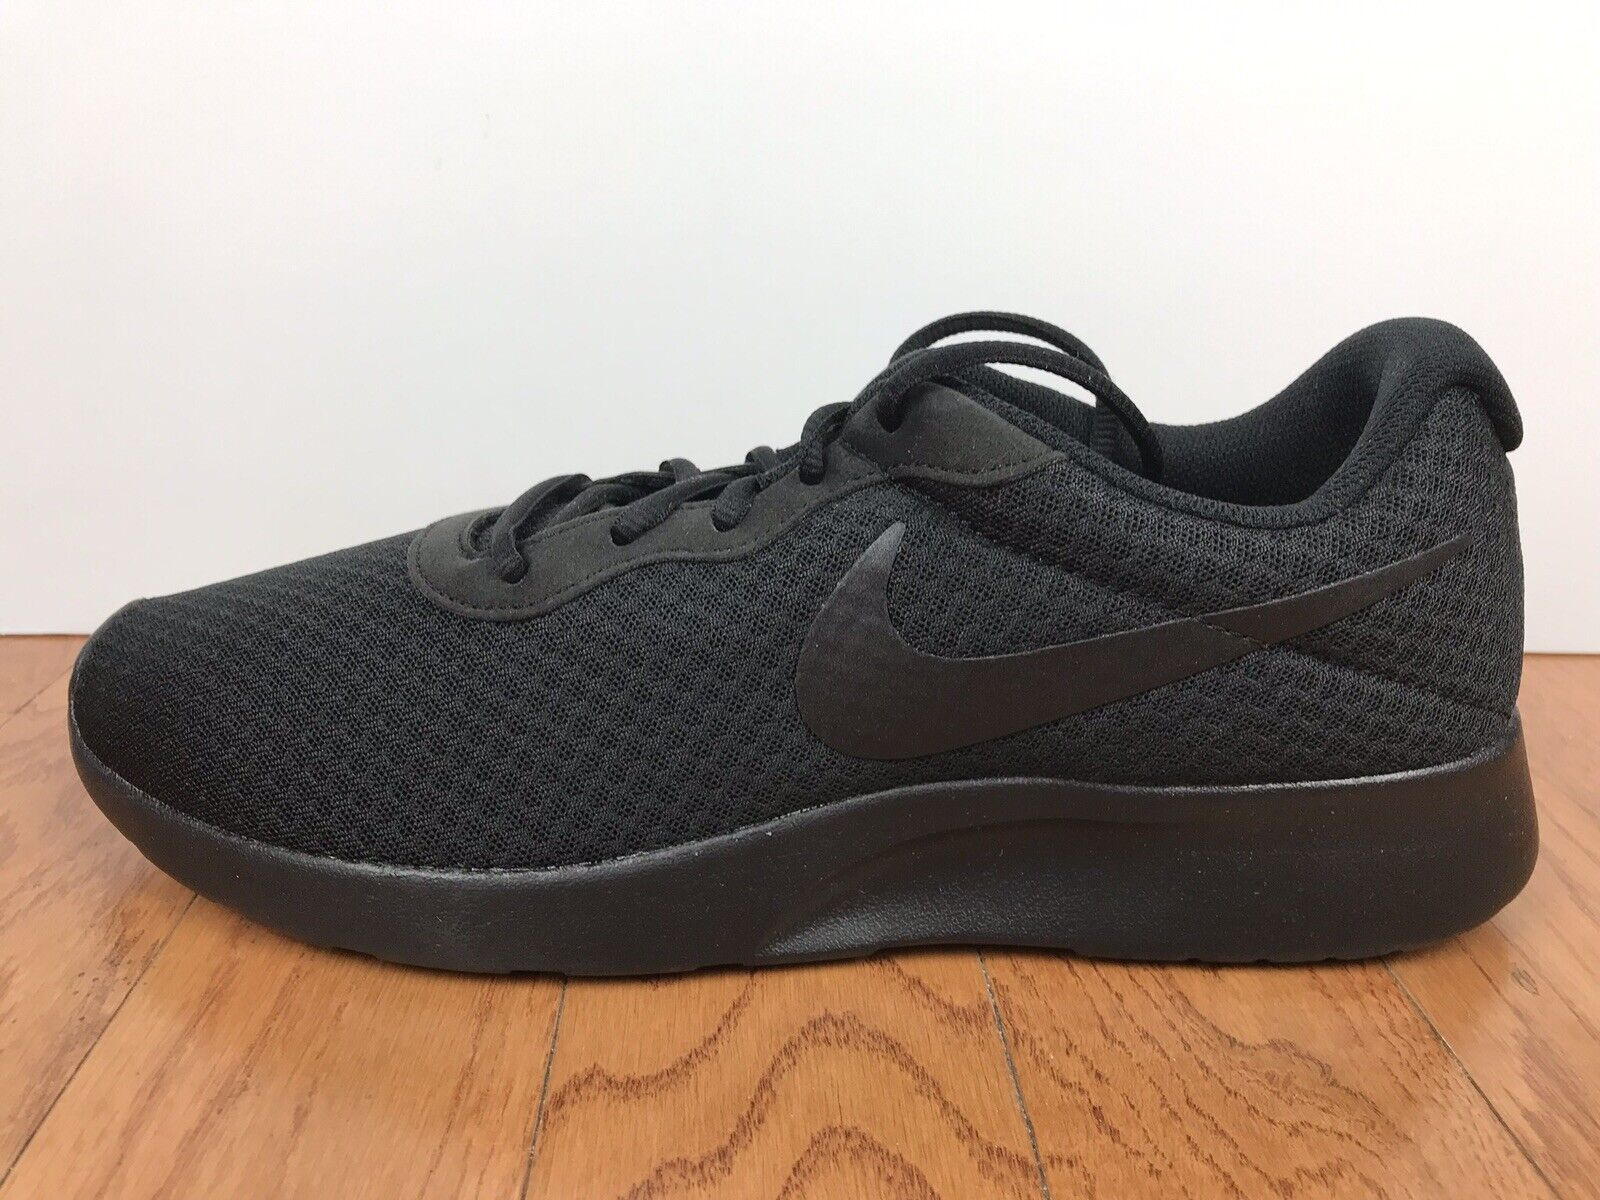 8e494909f25af6 Men s Nike Tanjun shoes shoes shoes Training Size-11 Black Anthracite  RUNNING (812654 001 ...